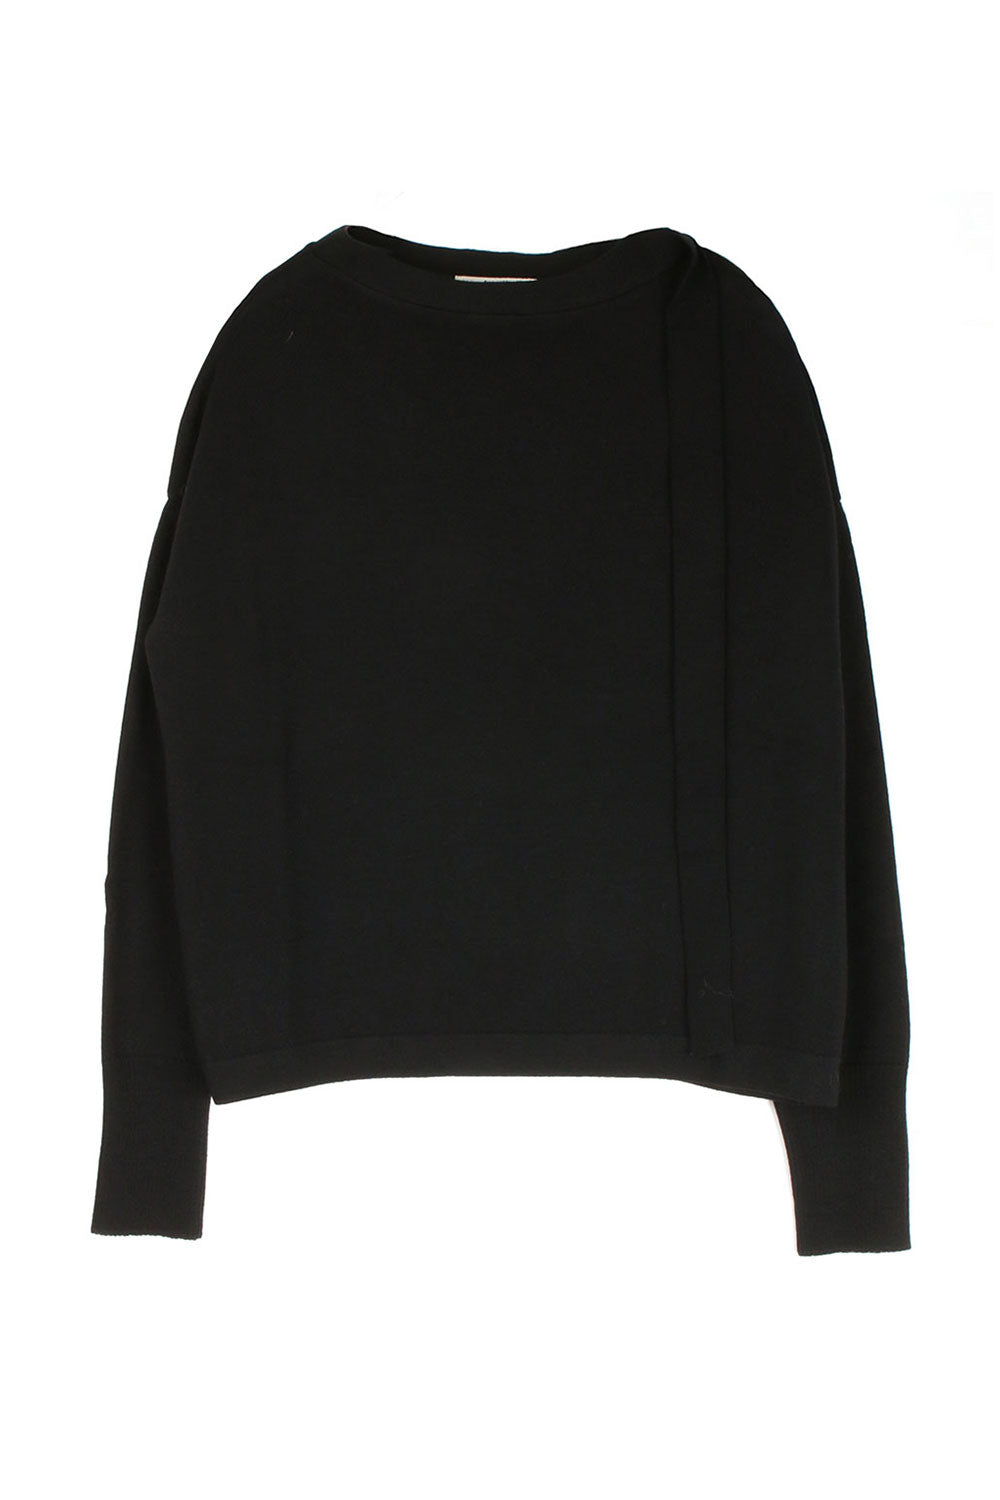 Boxy Black Knit W/ Ribbon